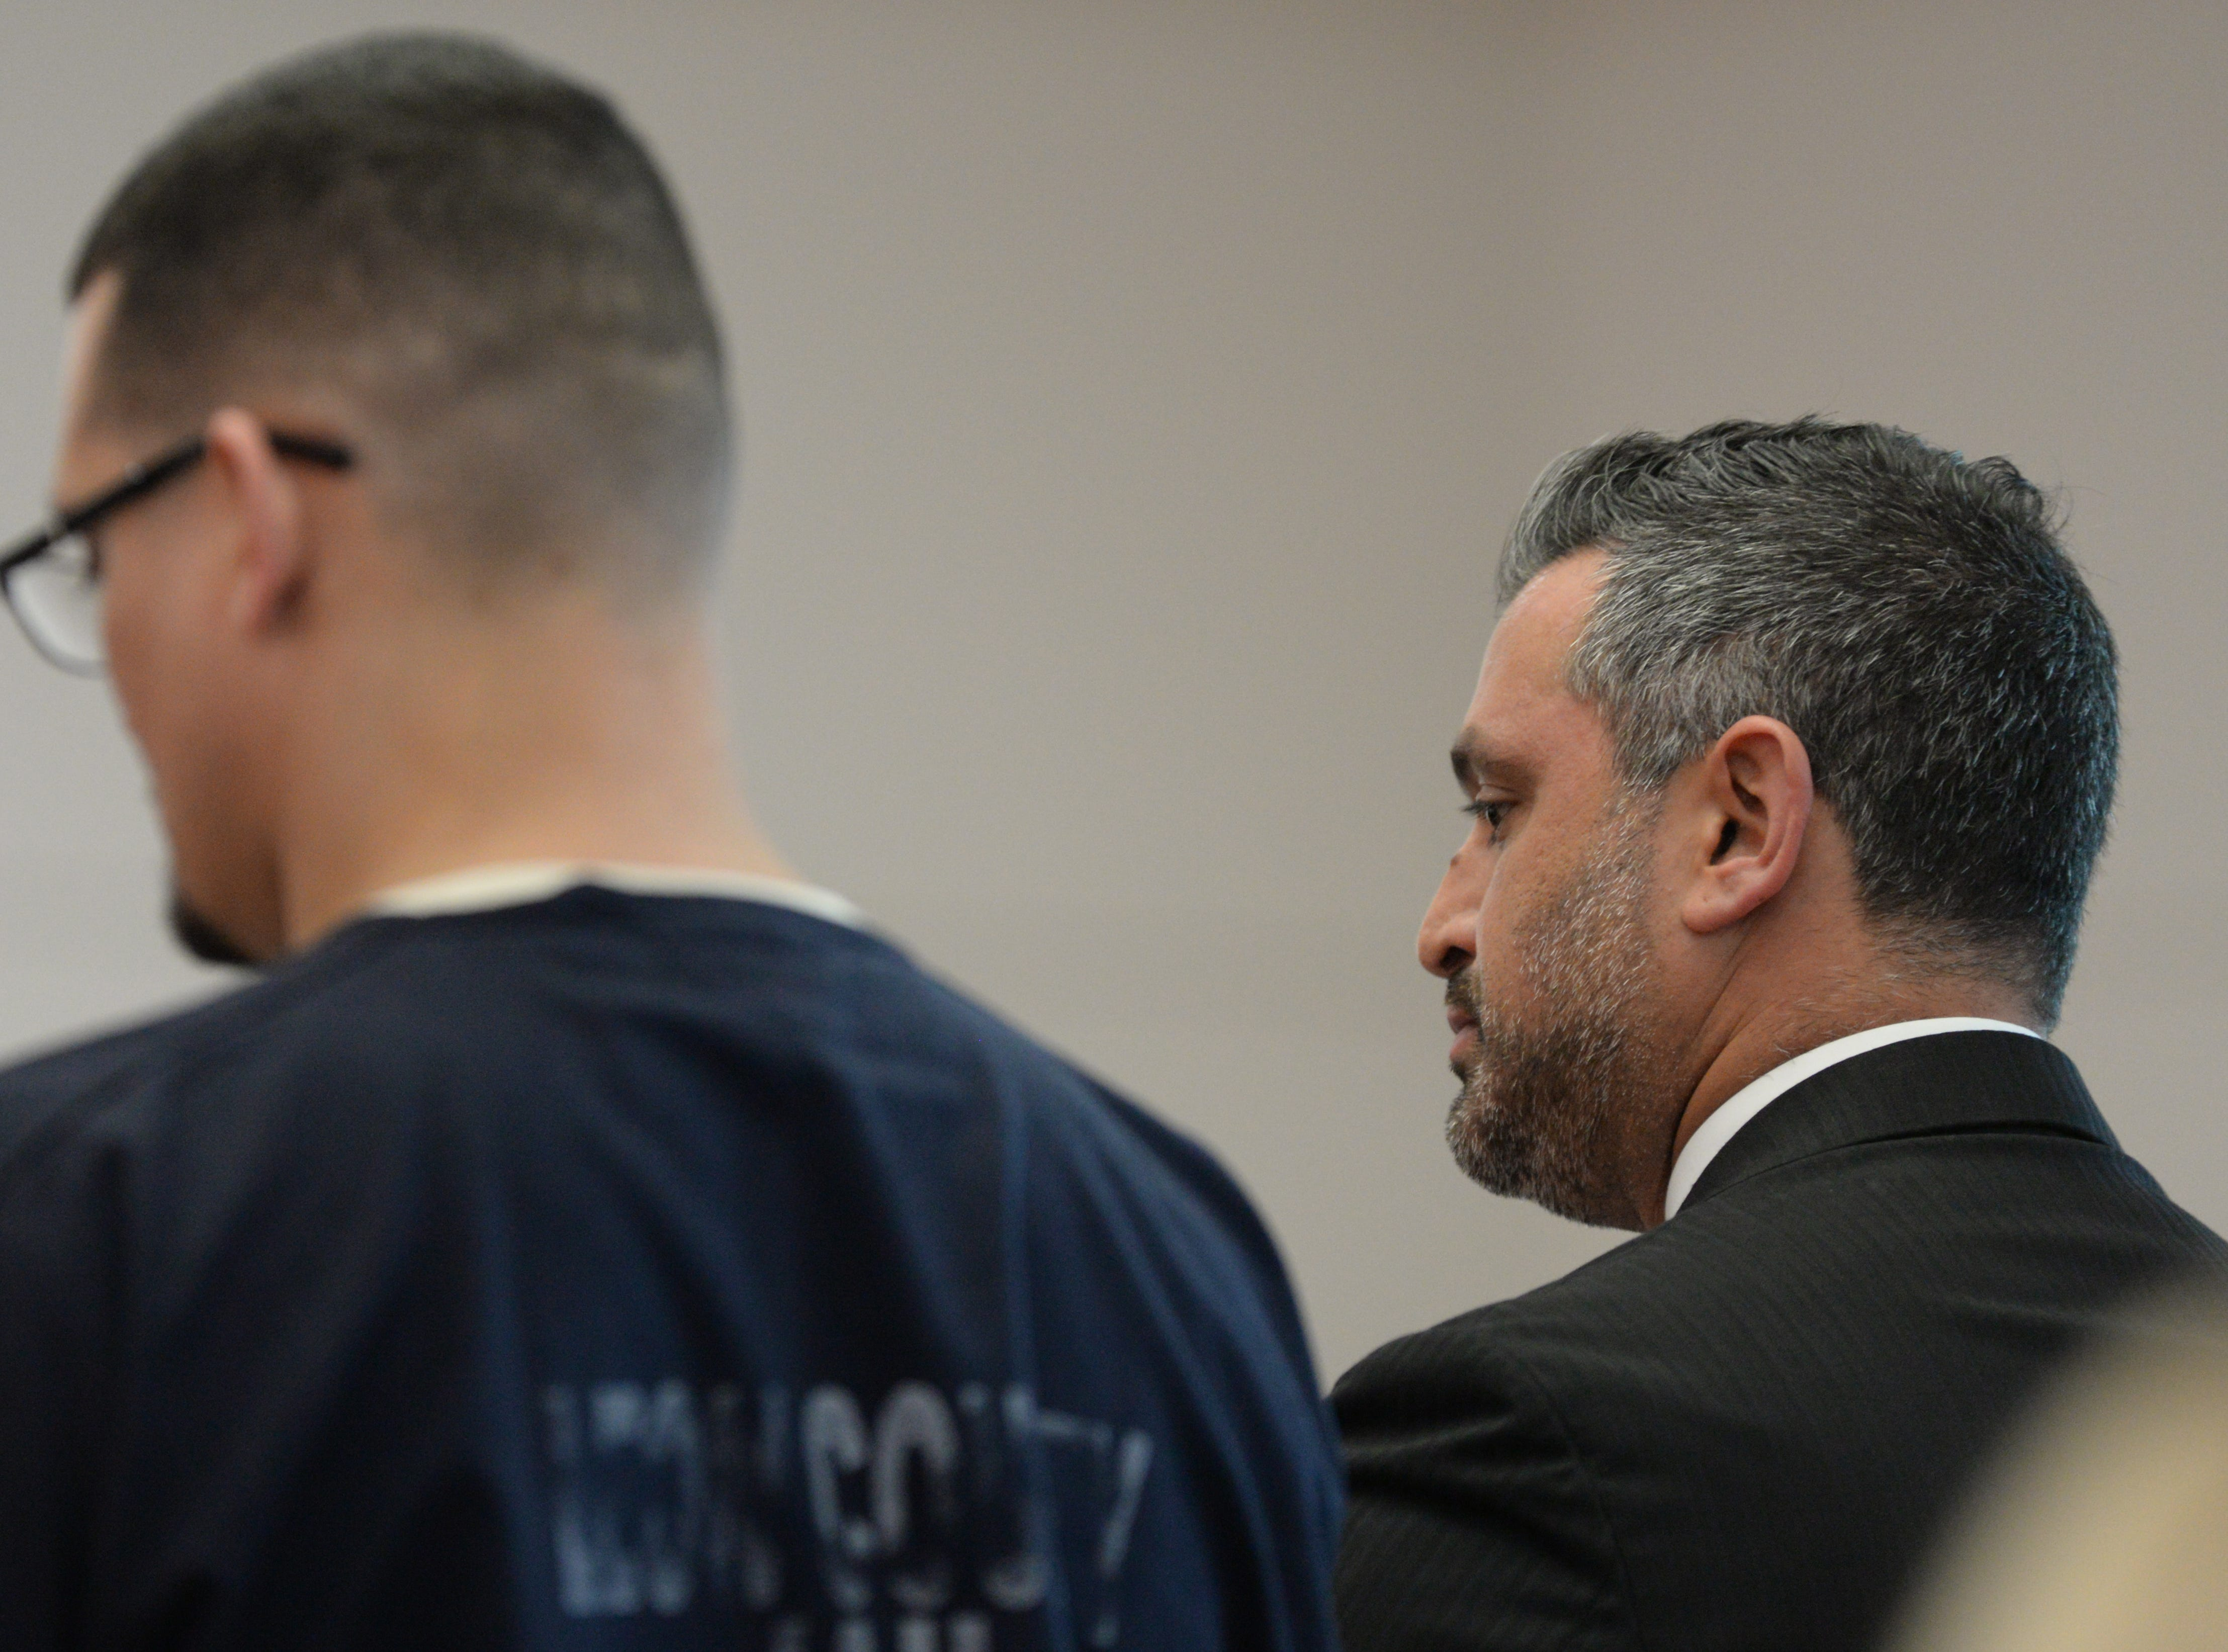 Saam Zengeneh, attorney for Sigfredo Garcia, one of two suspects set to stand trial next month in the murder of Dan Markel, asks Leon County Circuit Judge James C. Hankinson for a continuance in Garcia's trial at the Leon County Courthouse Tuesday, May 7, 2019. The request was denied.